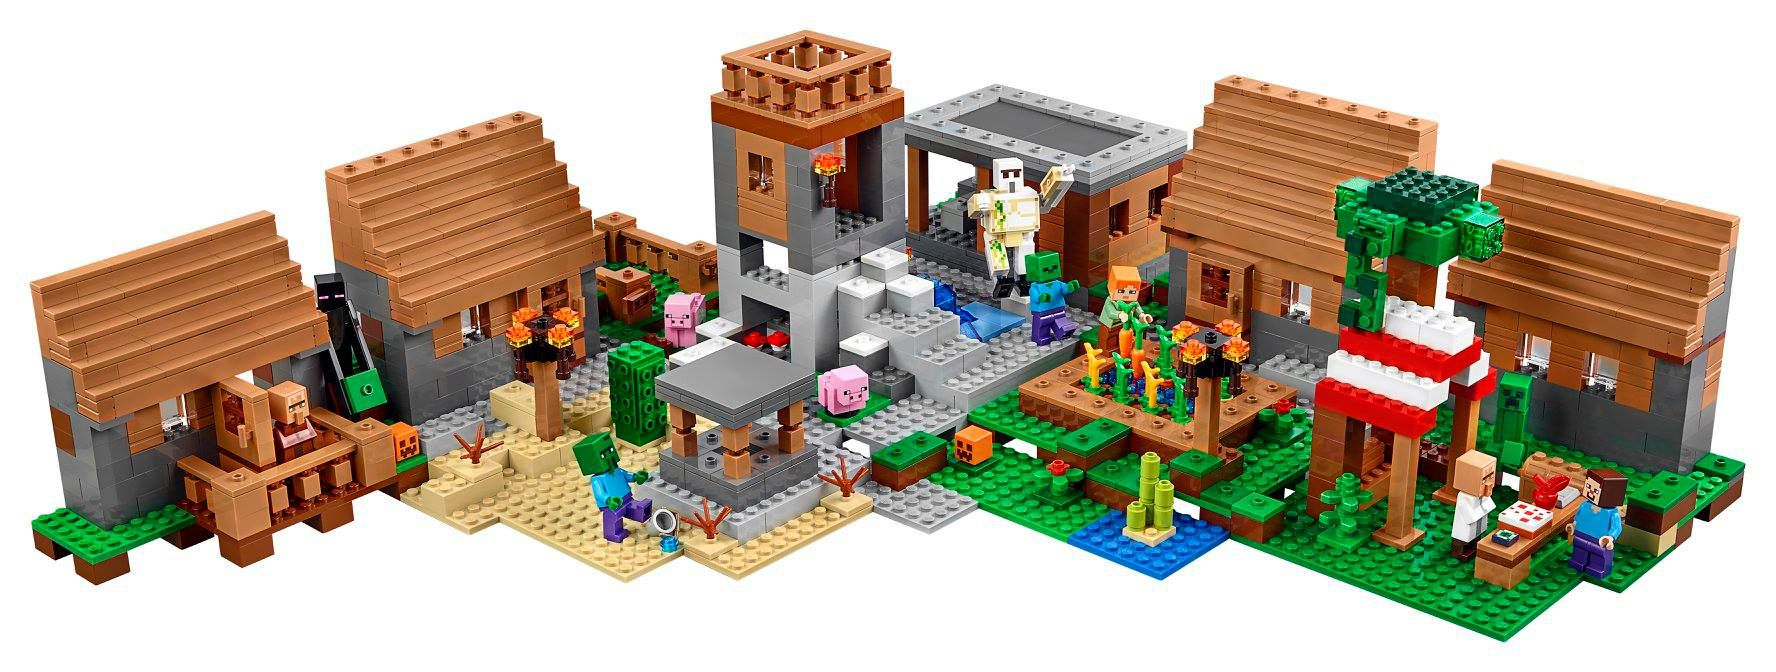 LEGO Minecraft 21128 Das Dorf LEGO-Minecraft-21128-The-Village_img09.jpg